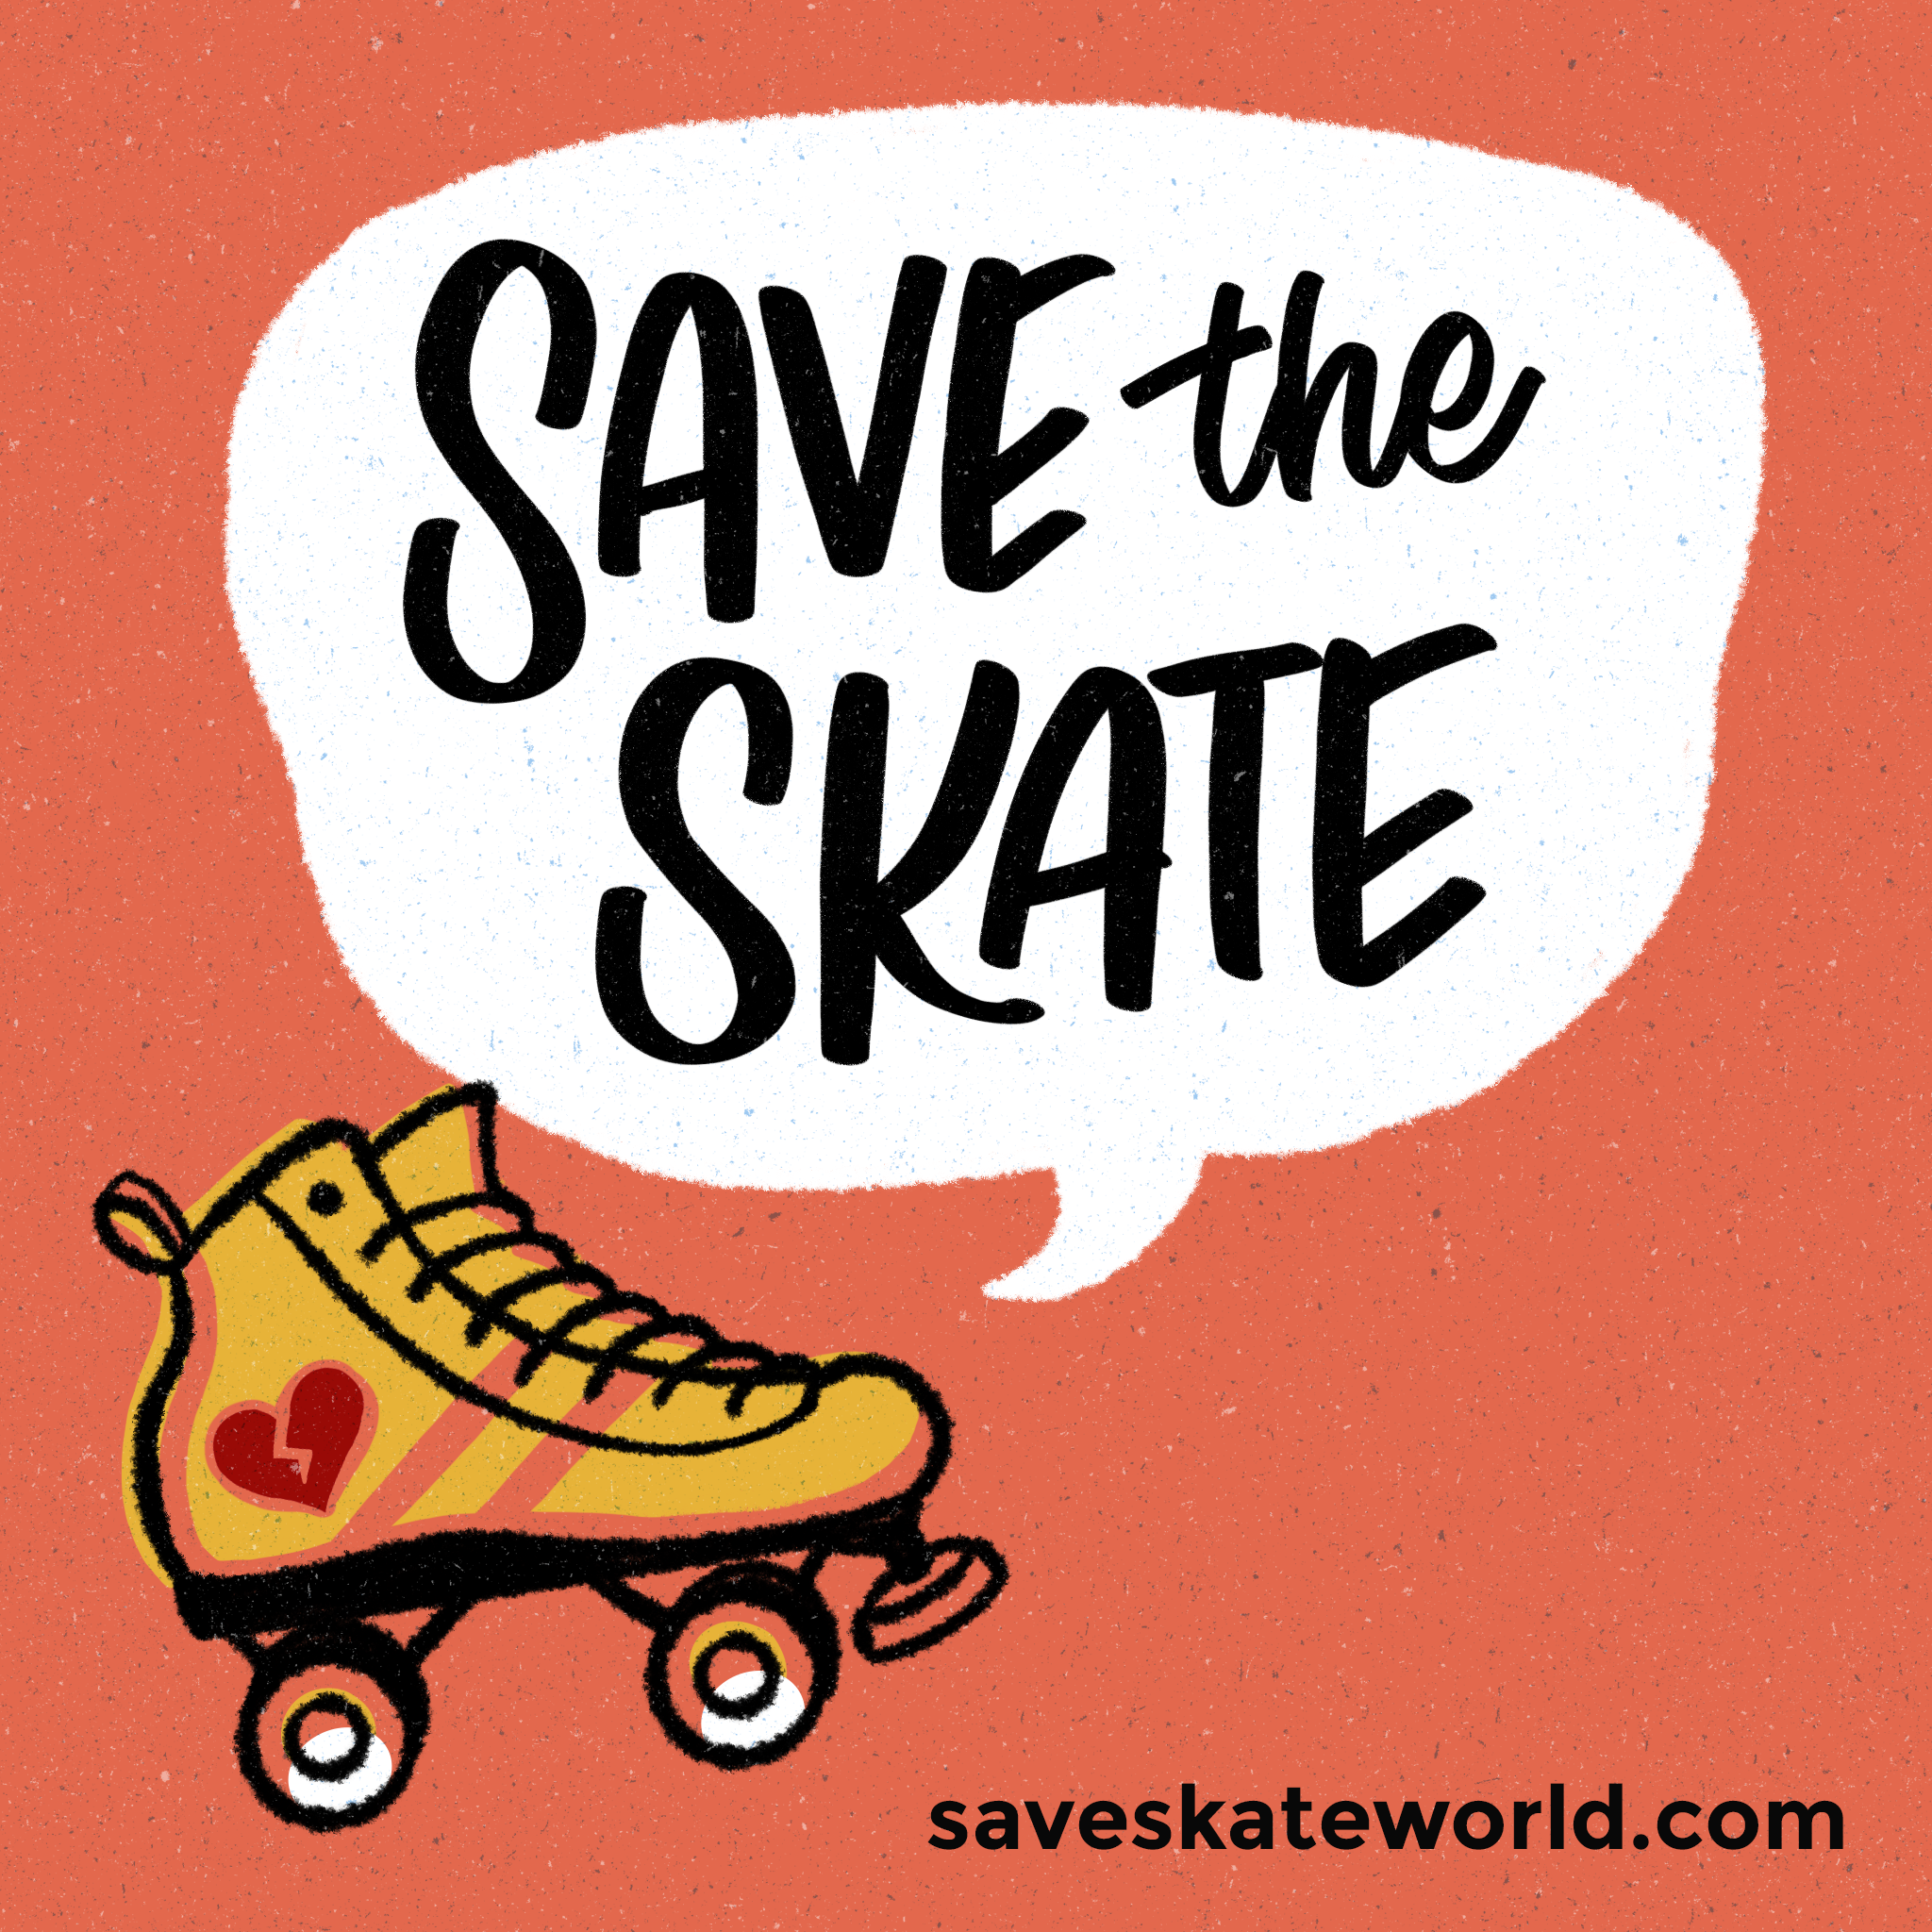 save-the-skate.png